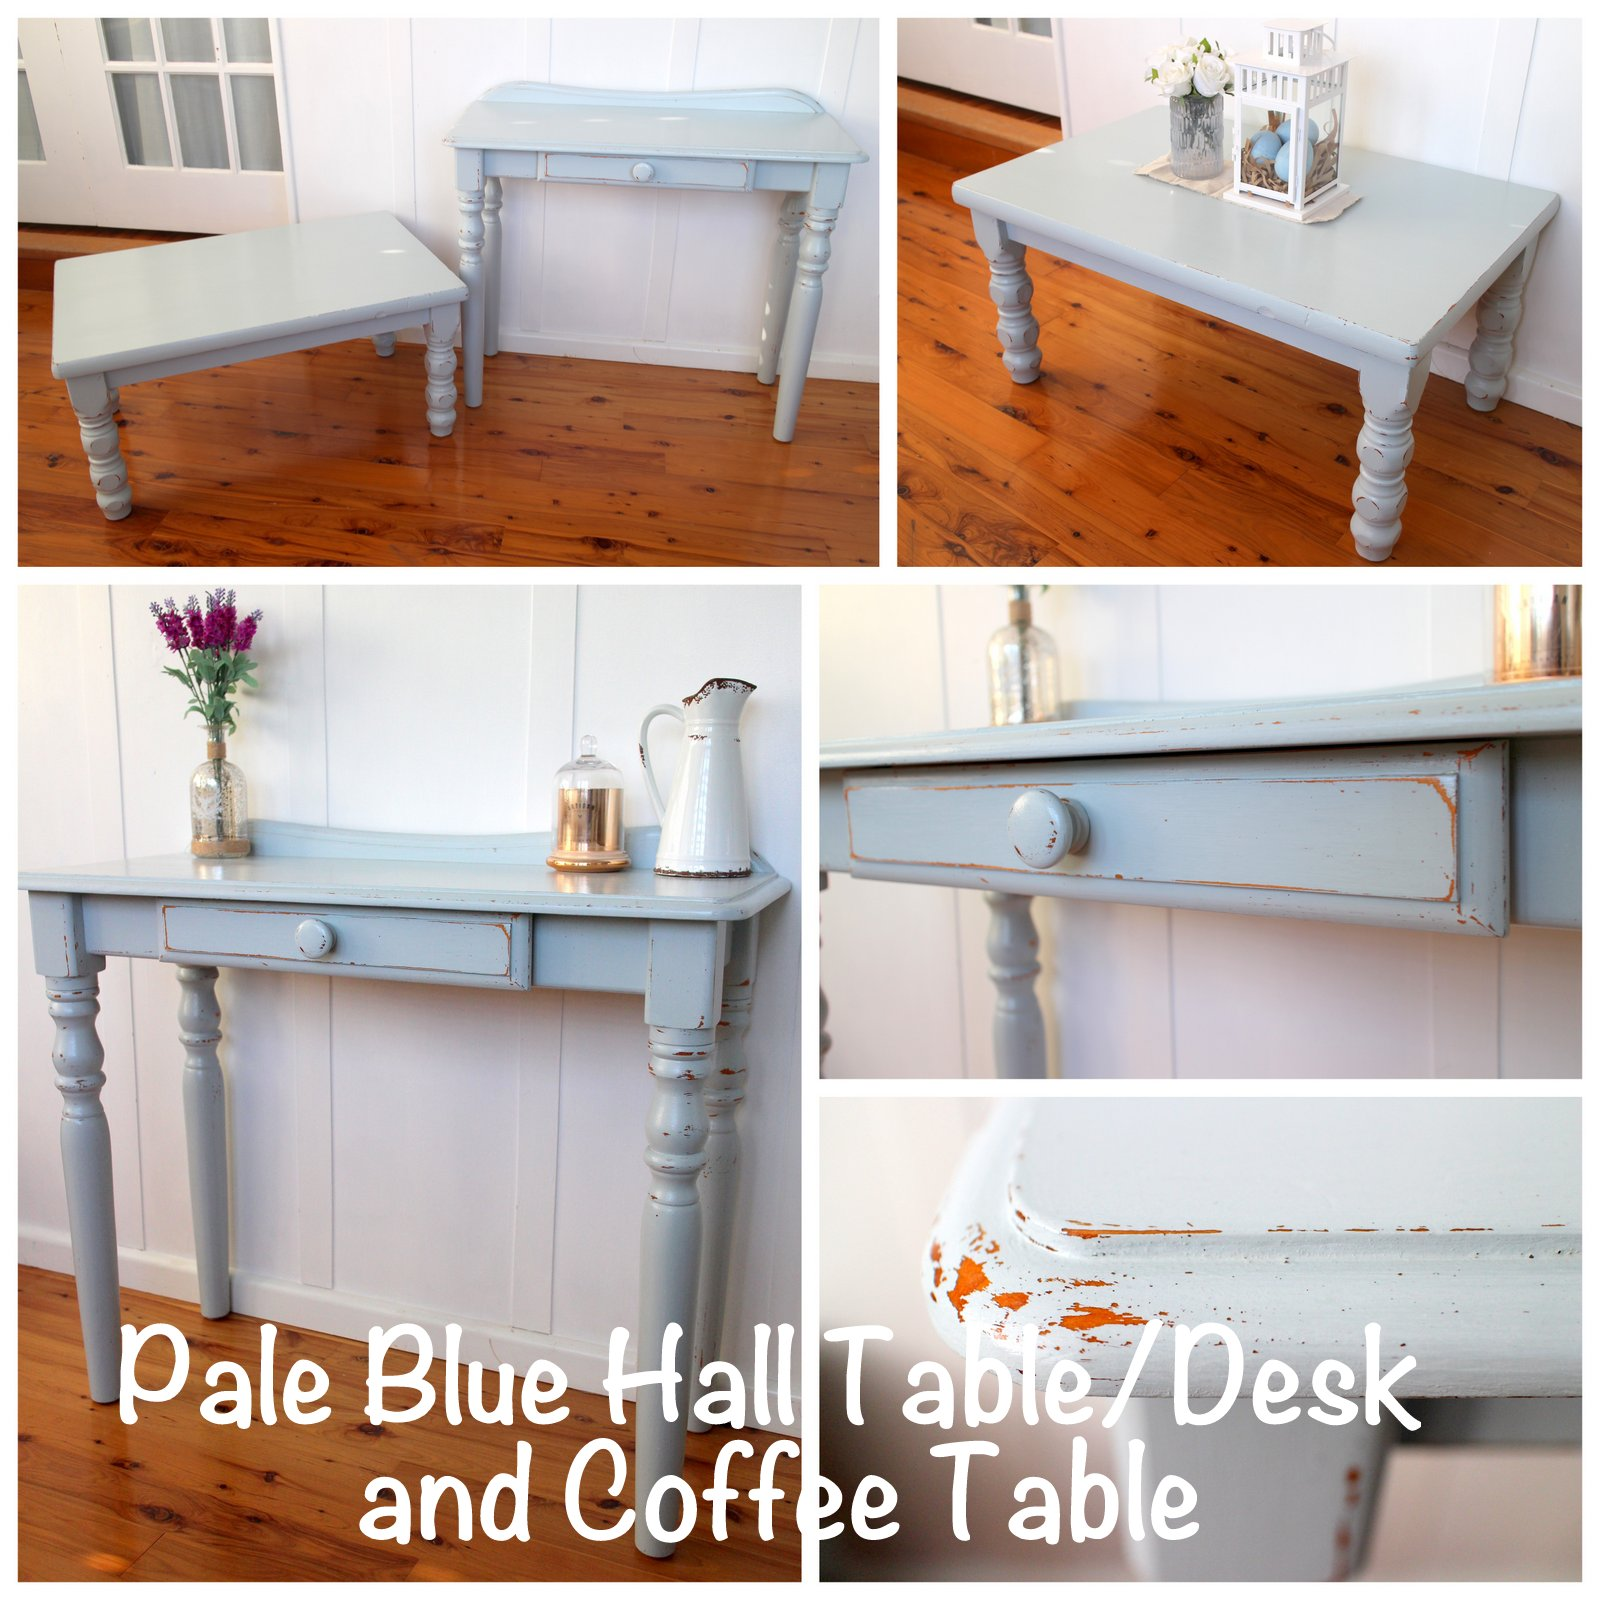 pale blue hall table desk and coffee table